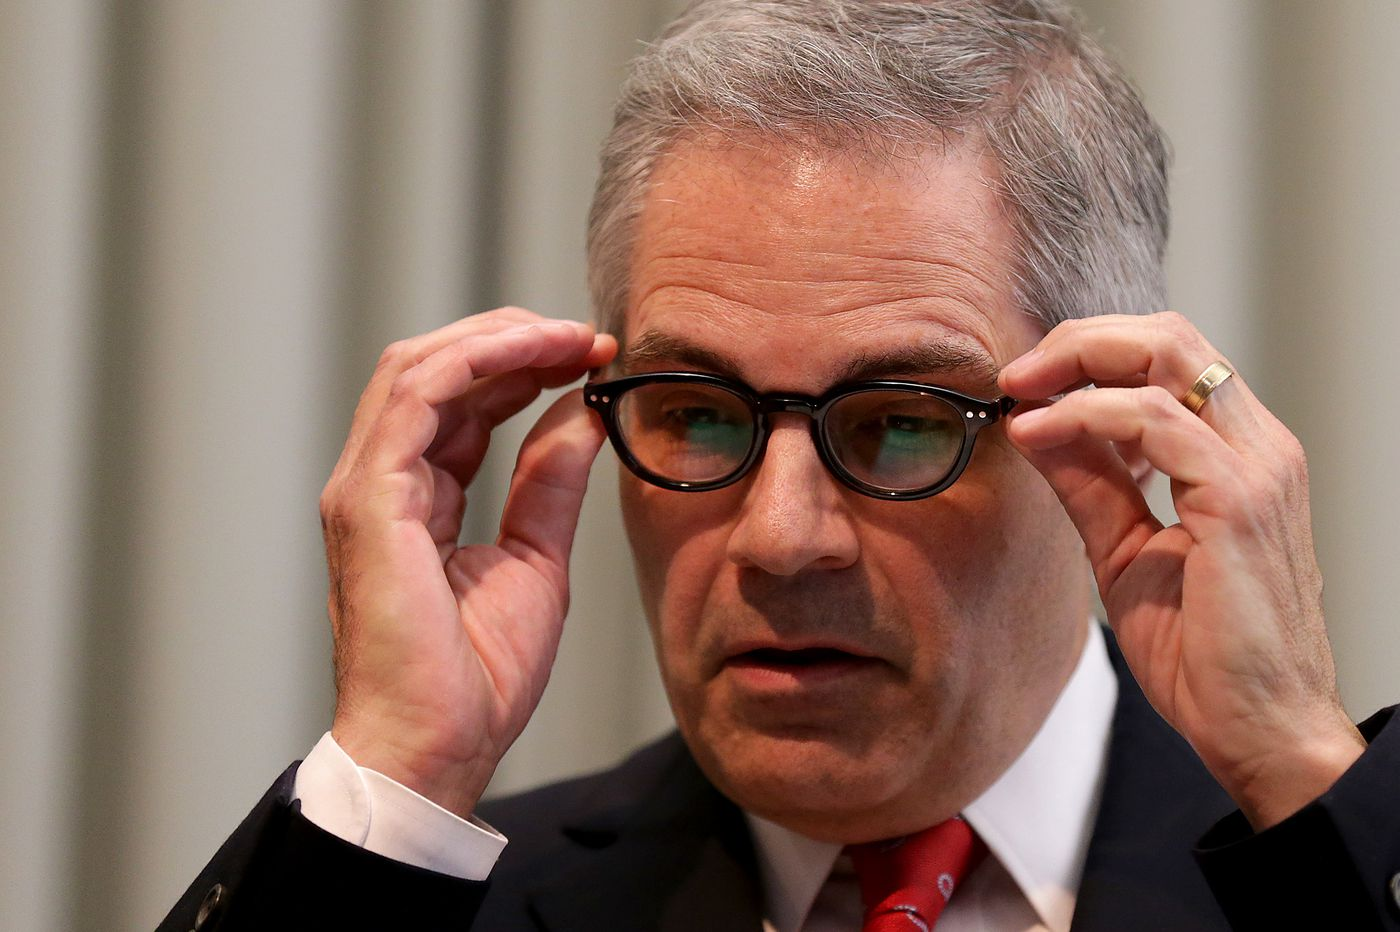 Larry Krasner didn't have to let down a murdered police officer's family | Mike Newall